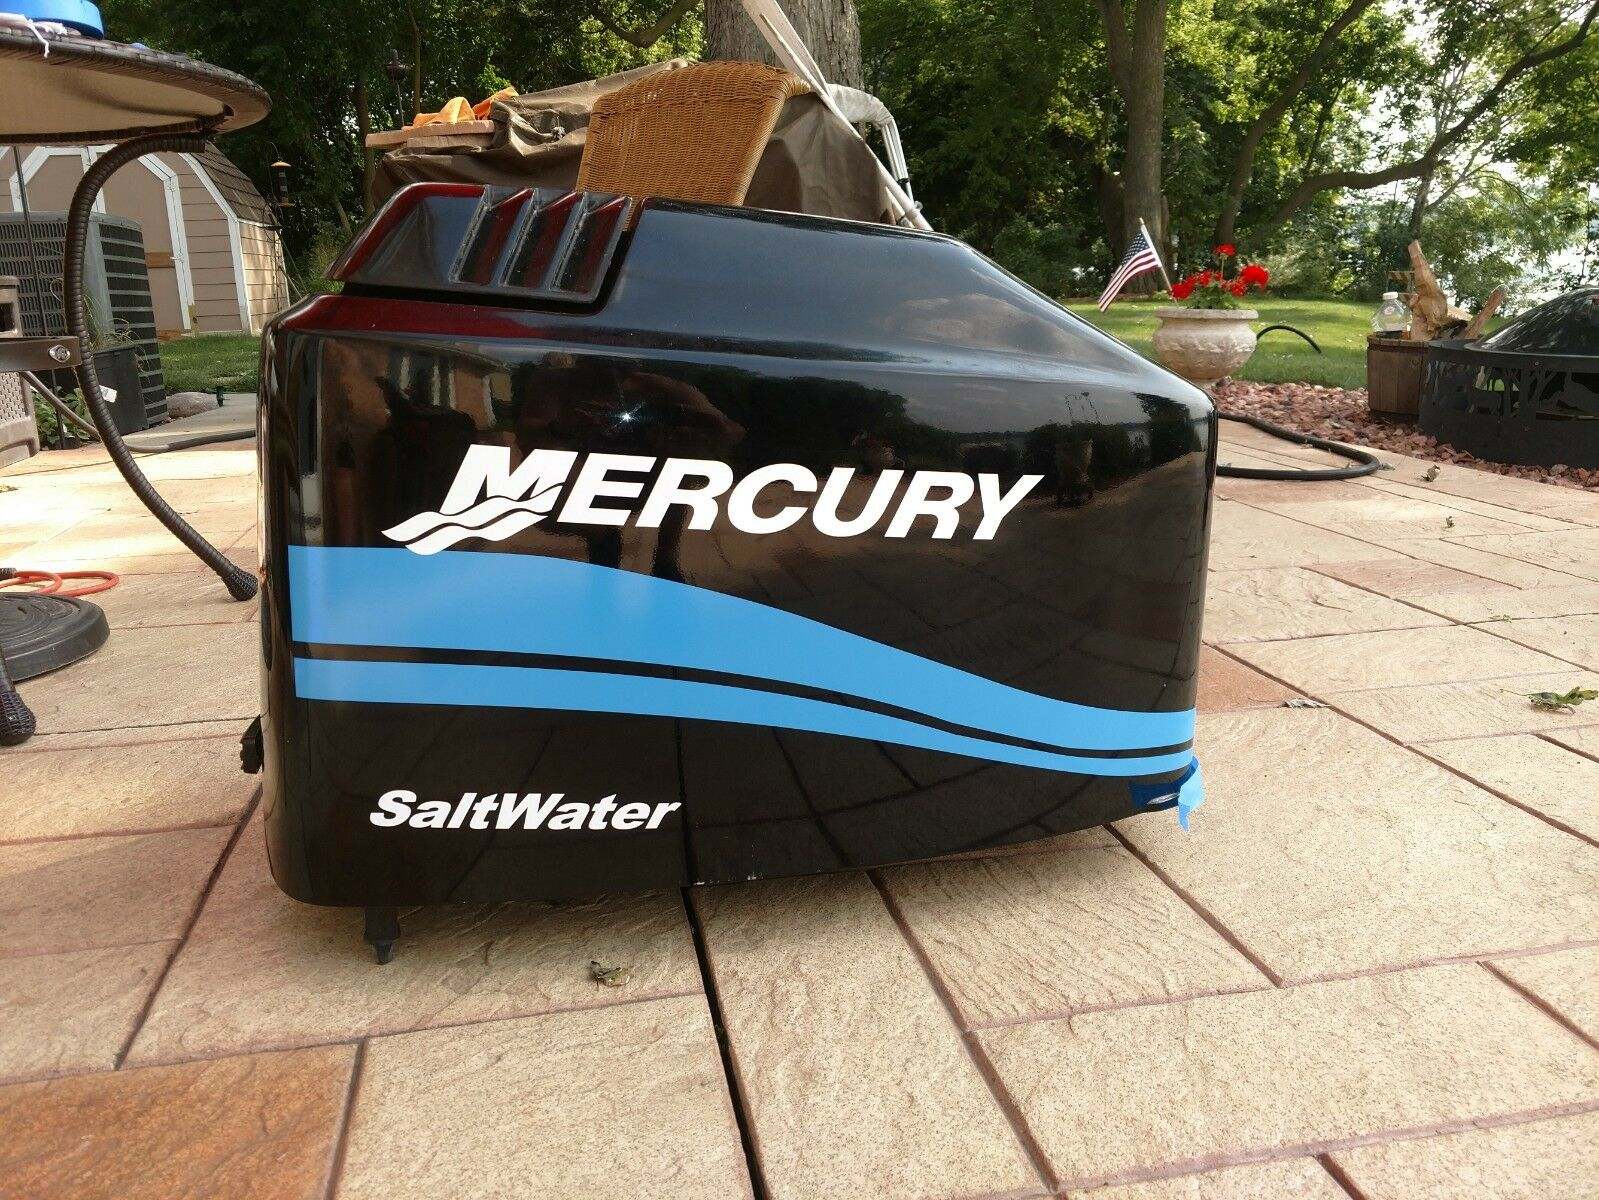 MERCURY BOAT MOTOR COWL DECAL SET  Saltwater Series bluee Stripe + Size Choices